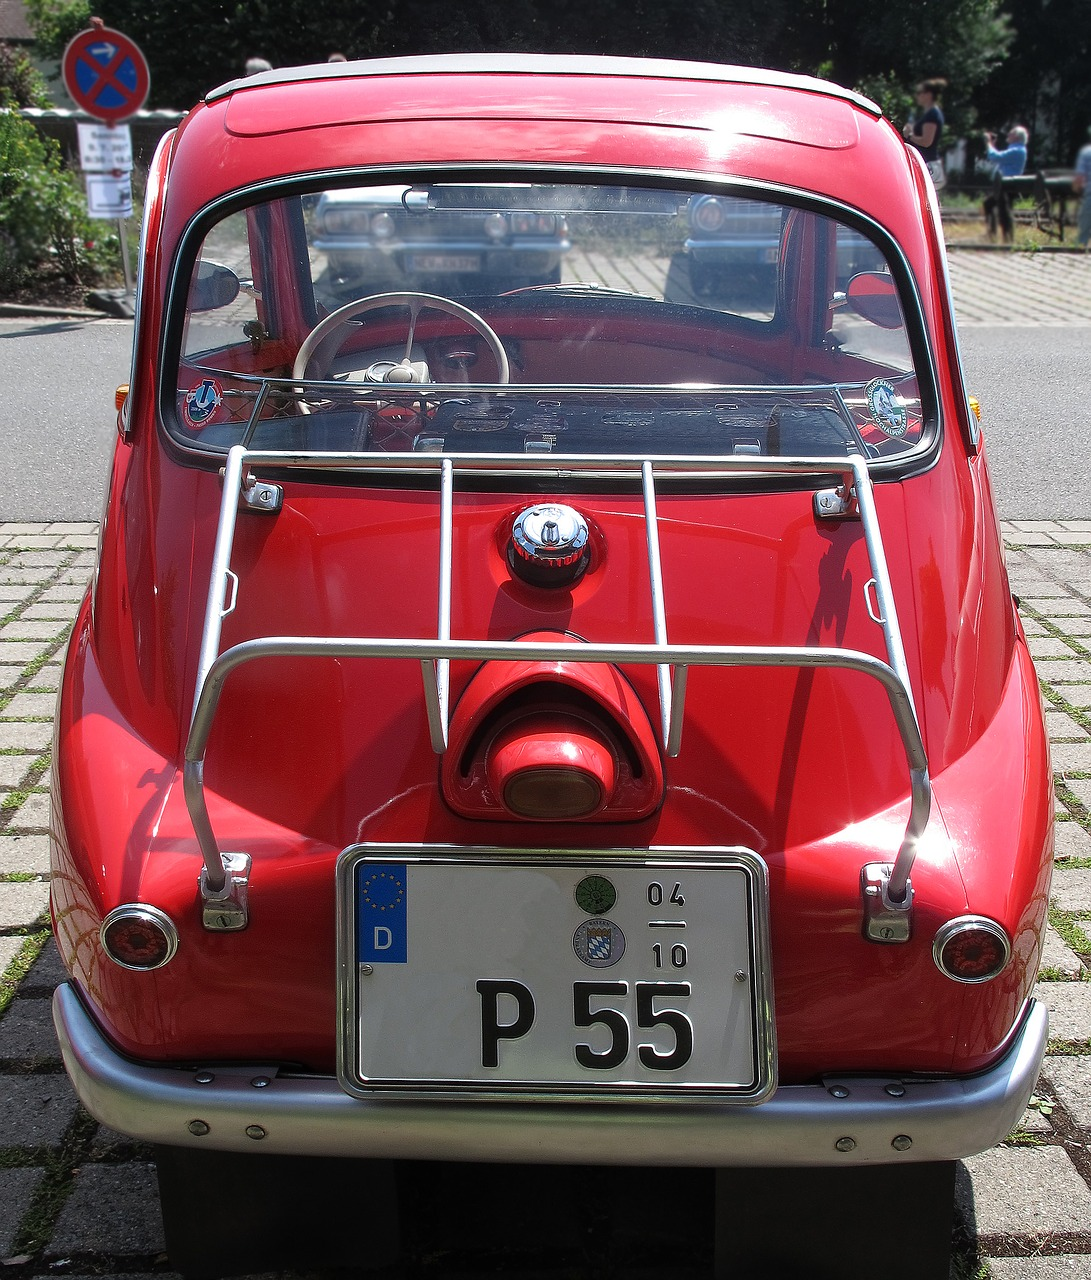 Oldtimer Bmw Isetta Isetta Bmw Collector S Item Free Photo From